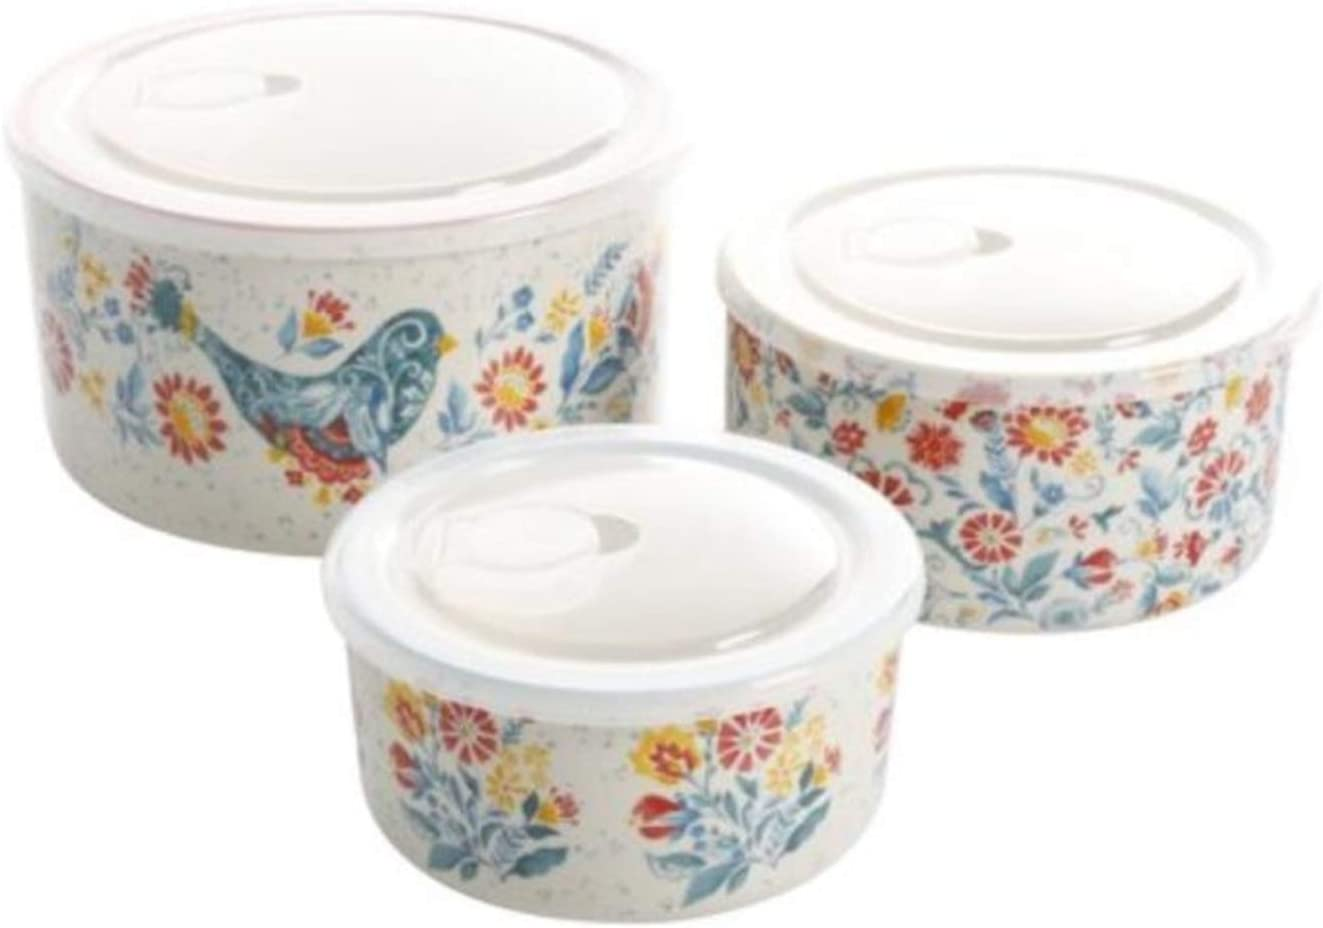 The Pioneer Woman Mazie 9-Piece Round Ceramic Nesting Bowl Set with Build-In Steam Release